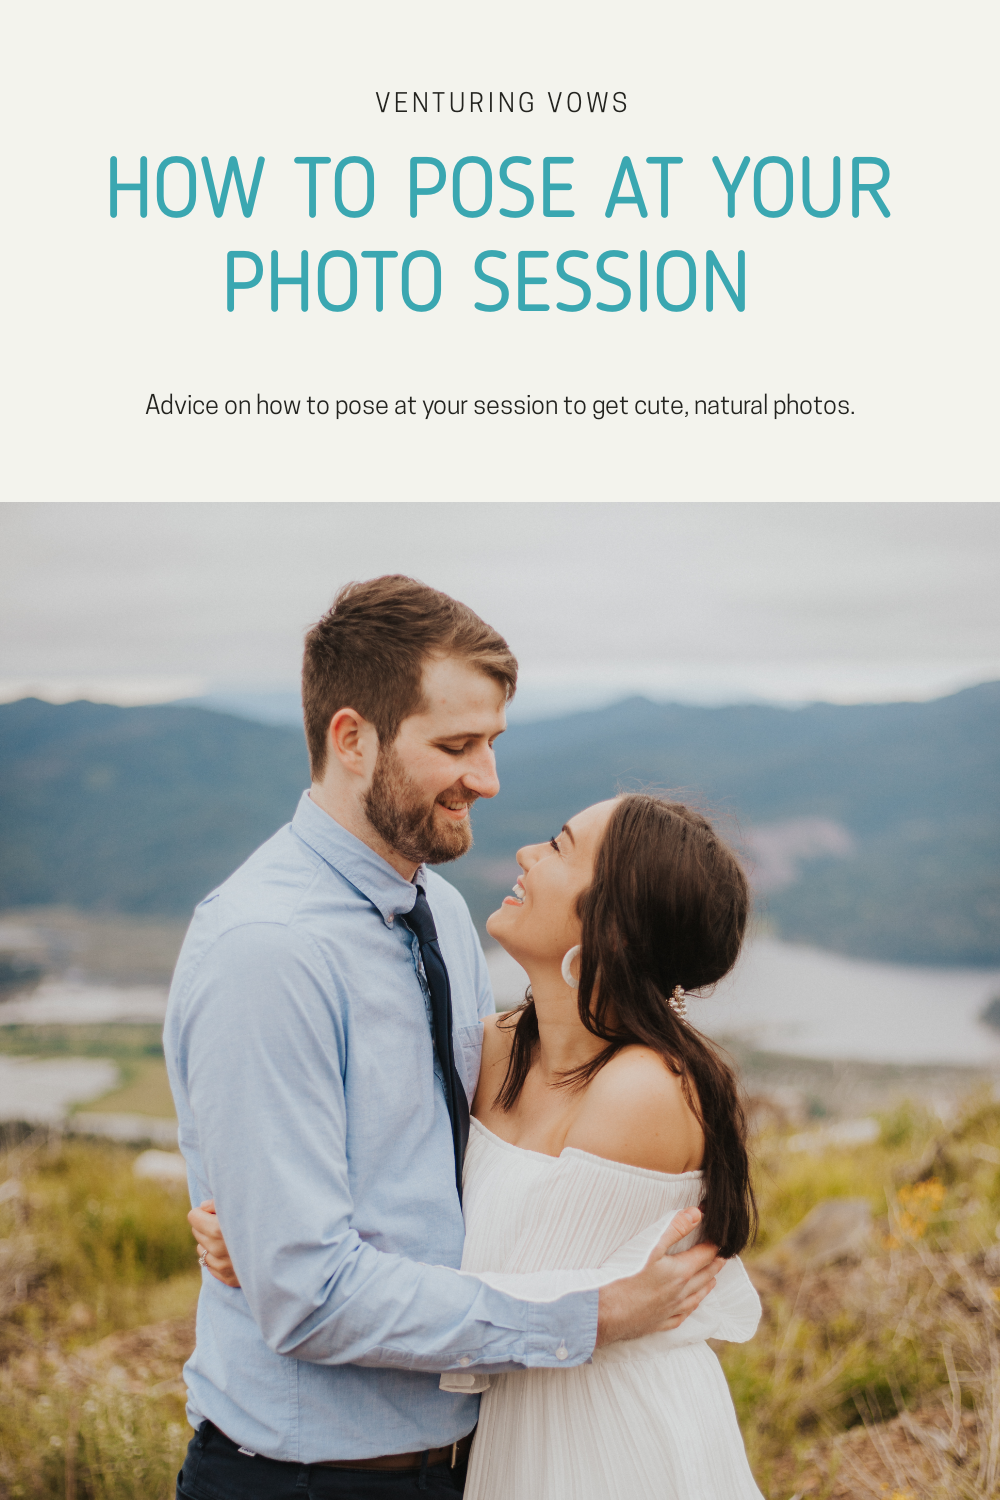 How to Pose at Your Photo Session